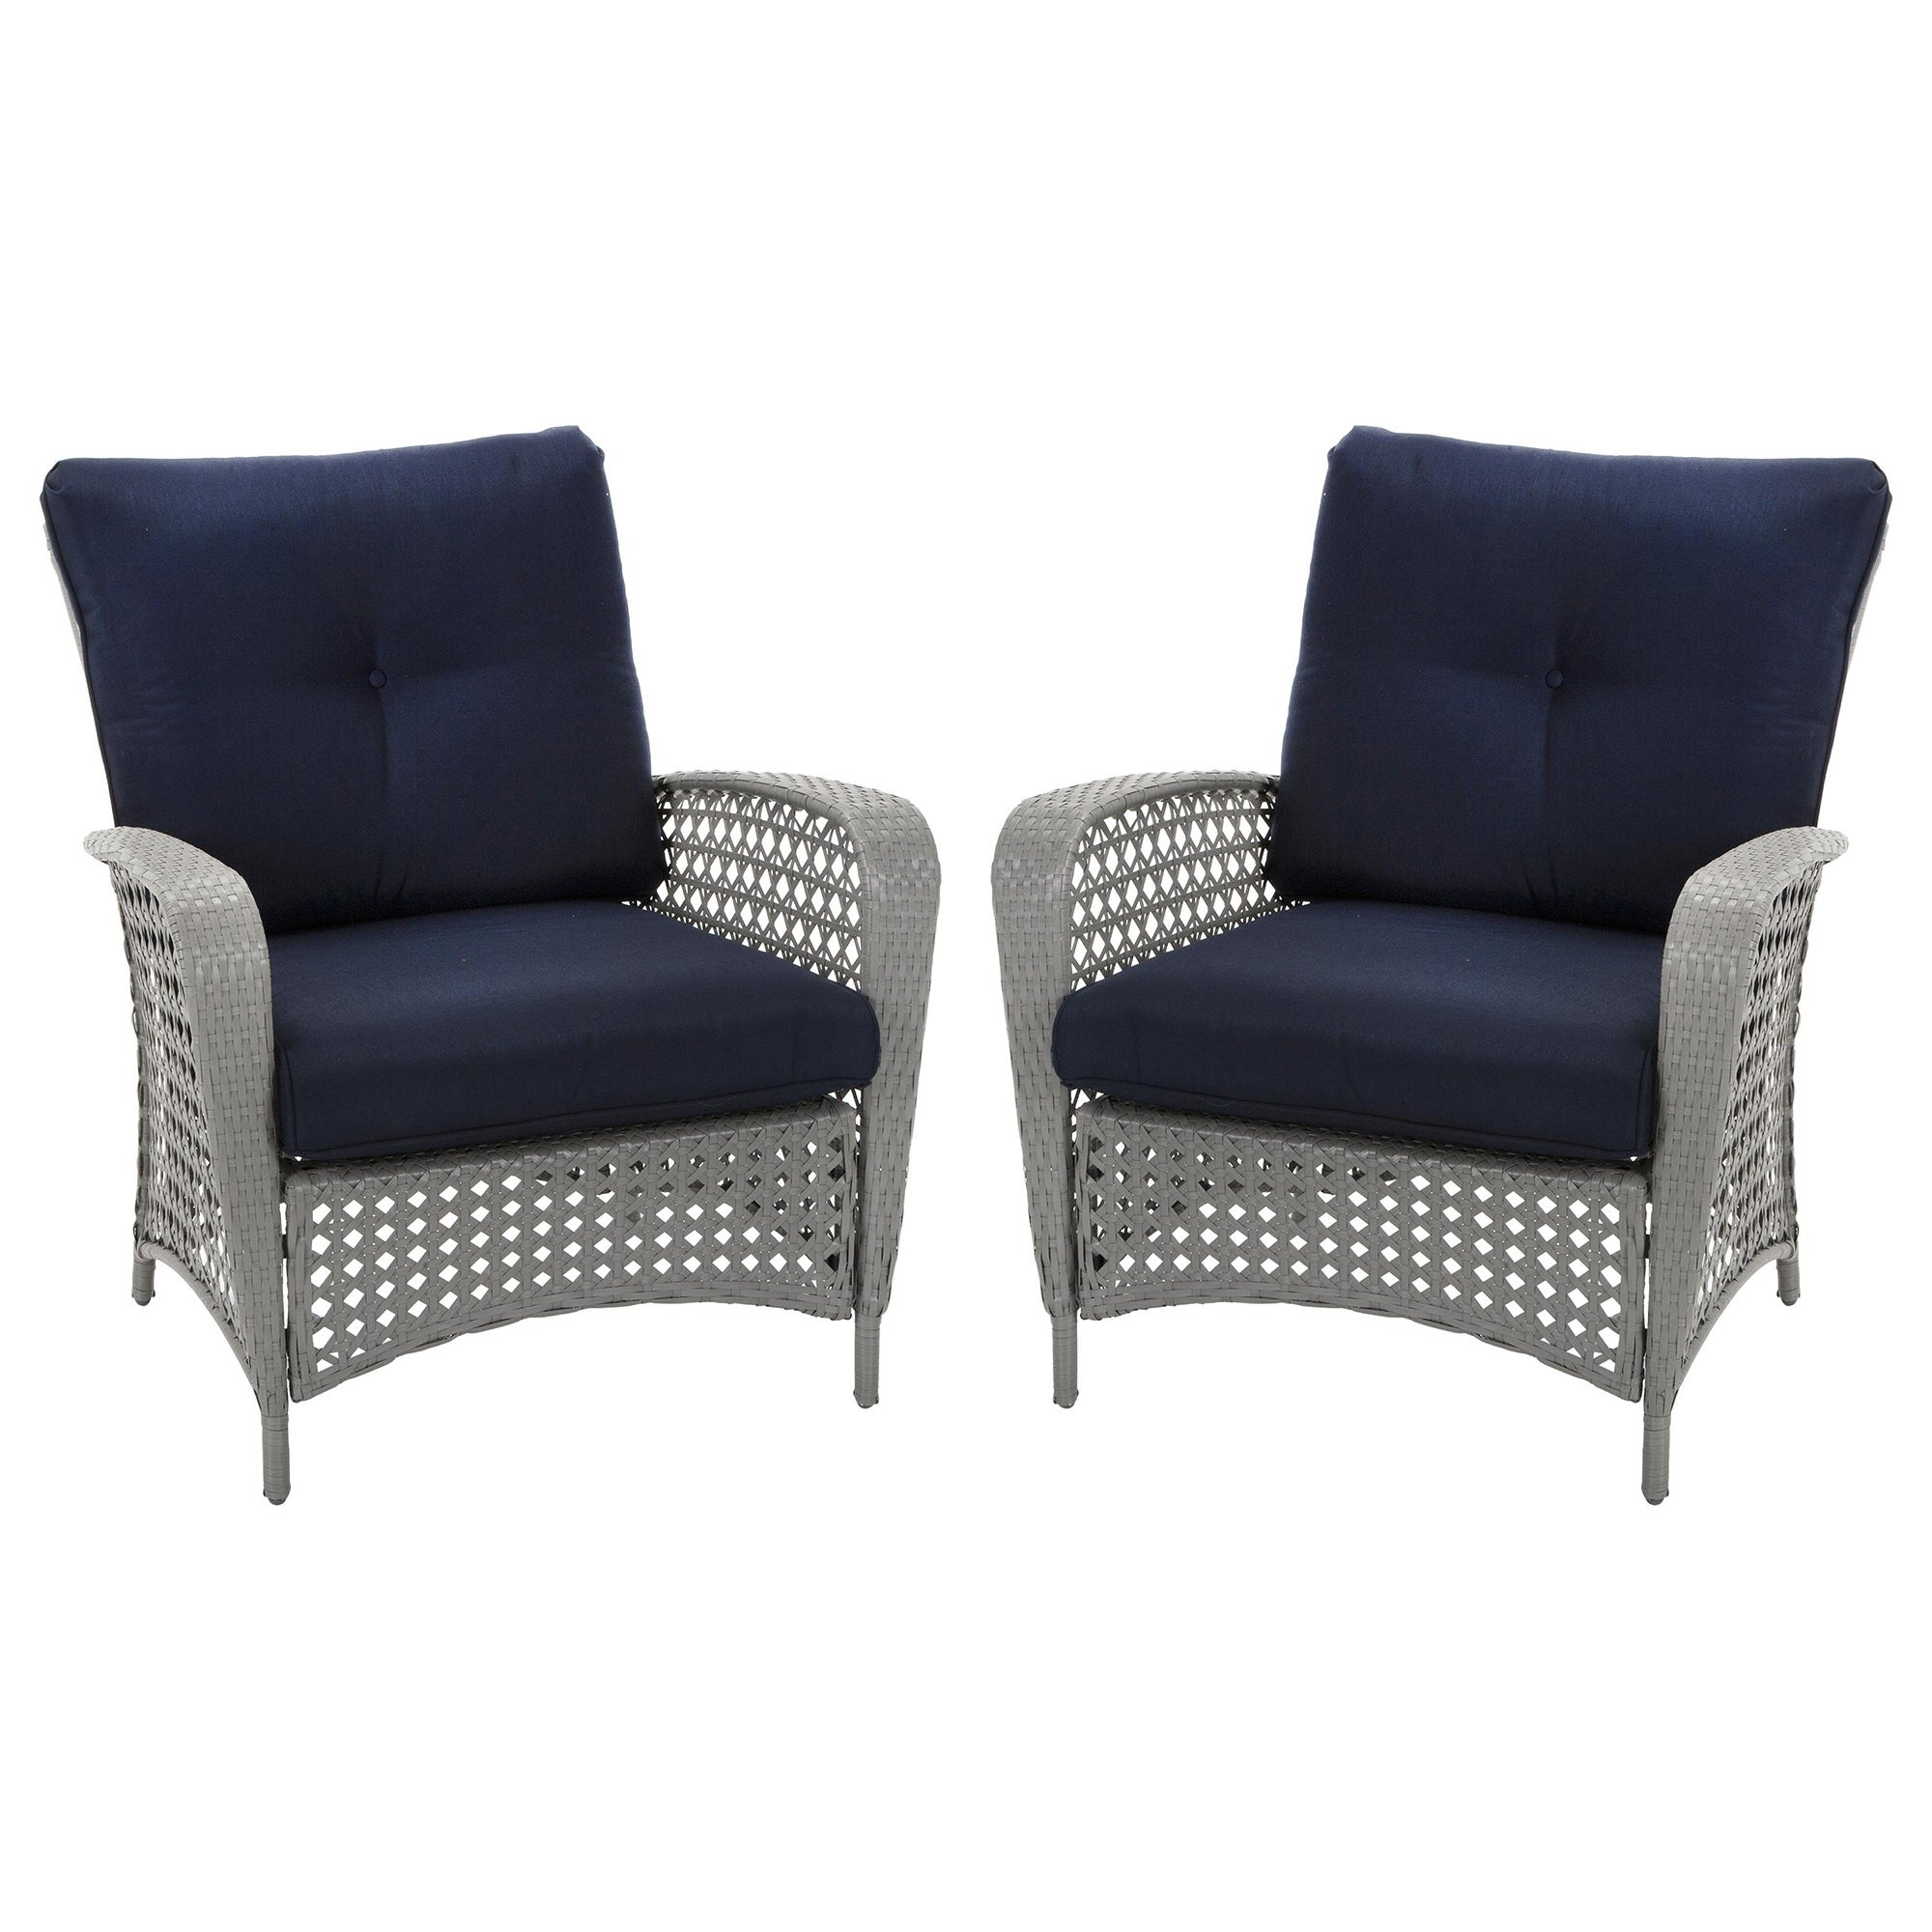 Cosco Outdoor Steel Woven Wicker Chaise Lounge Chairs With Regard To Most Up To Date Cosco Outdoor Living Lakewood Ranch Steel Woven Wicker Lounge Chairs With Cushions (set Of 2 Chairs) (View 13 of 25)